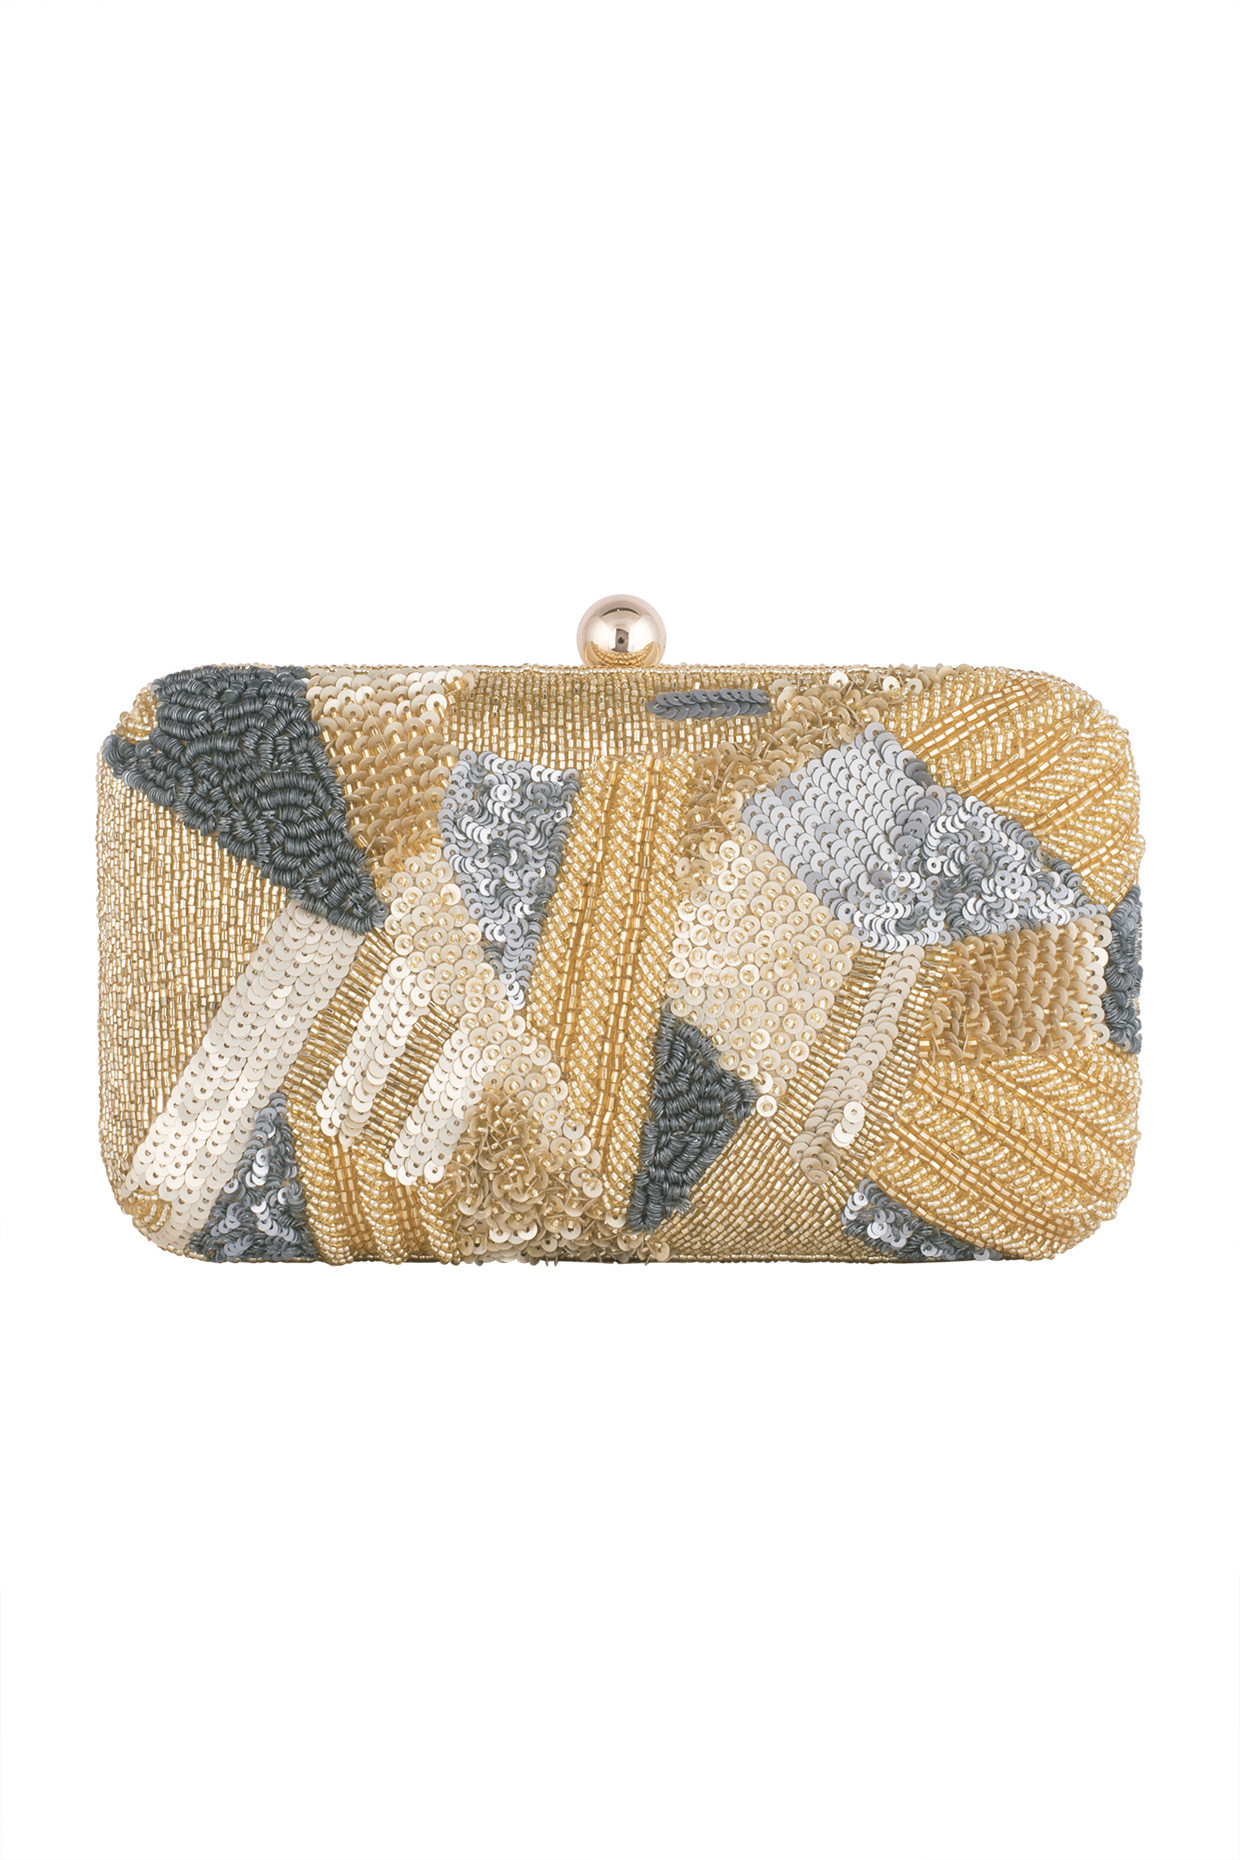 Gold Geometrical Embroidered Clutch by Sonnet-Handpicked for You